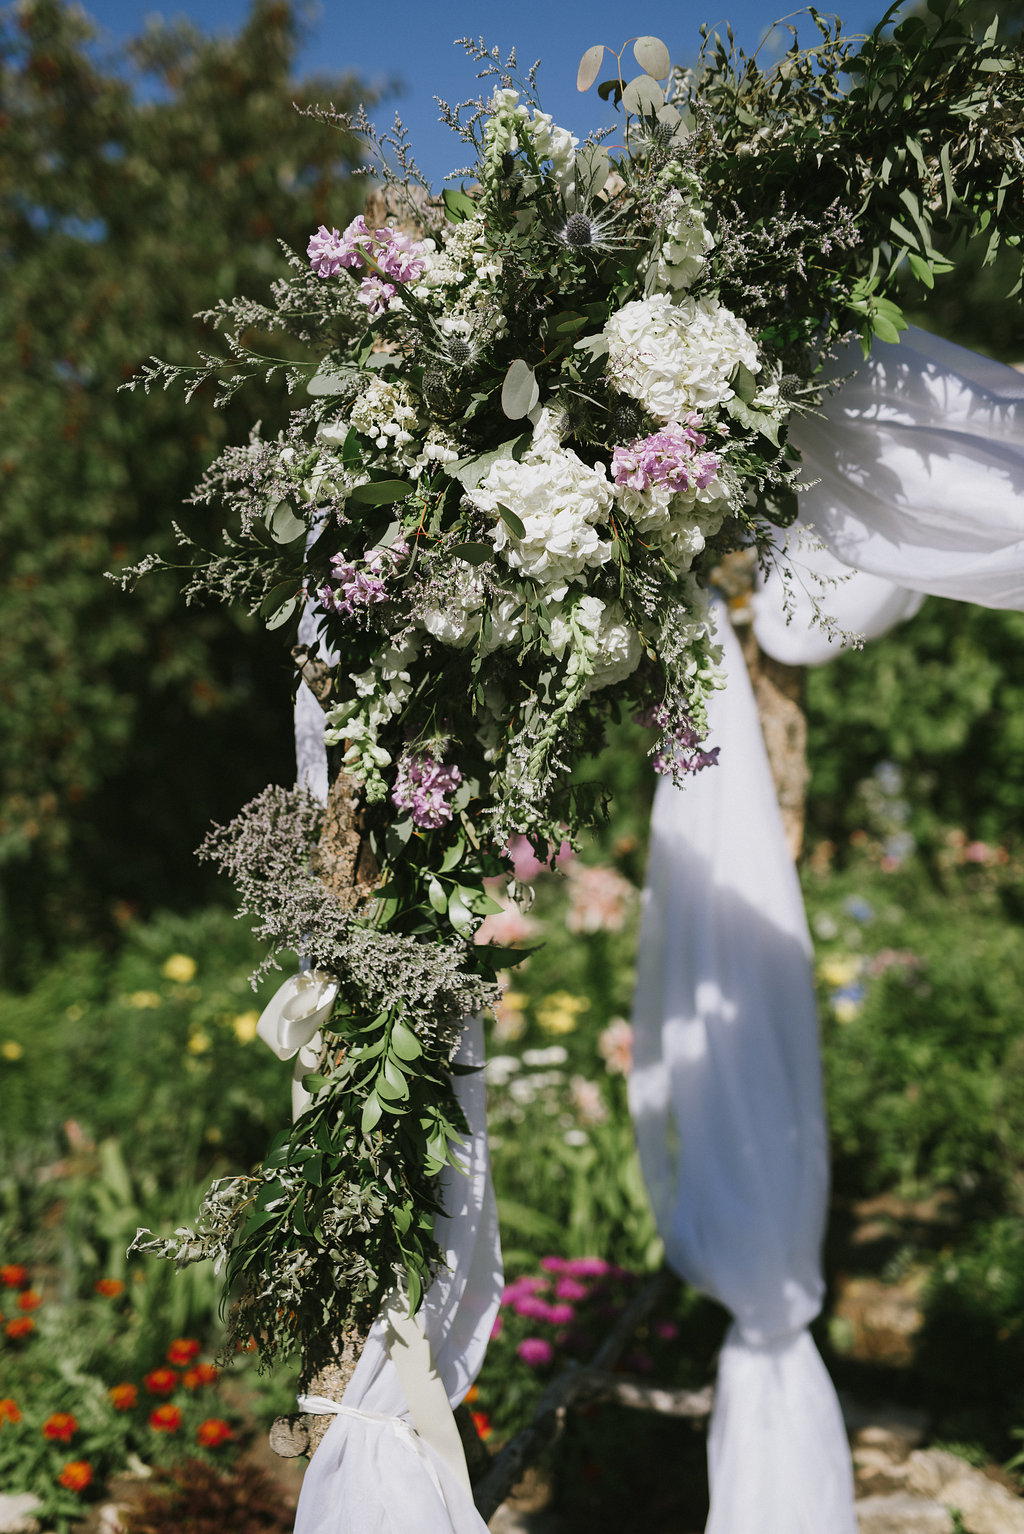 White and Lavender Wedding Flowers - Pineridge Hollow Wedding